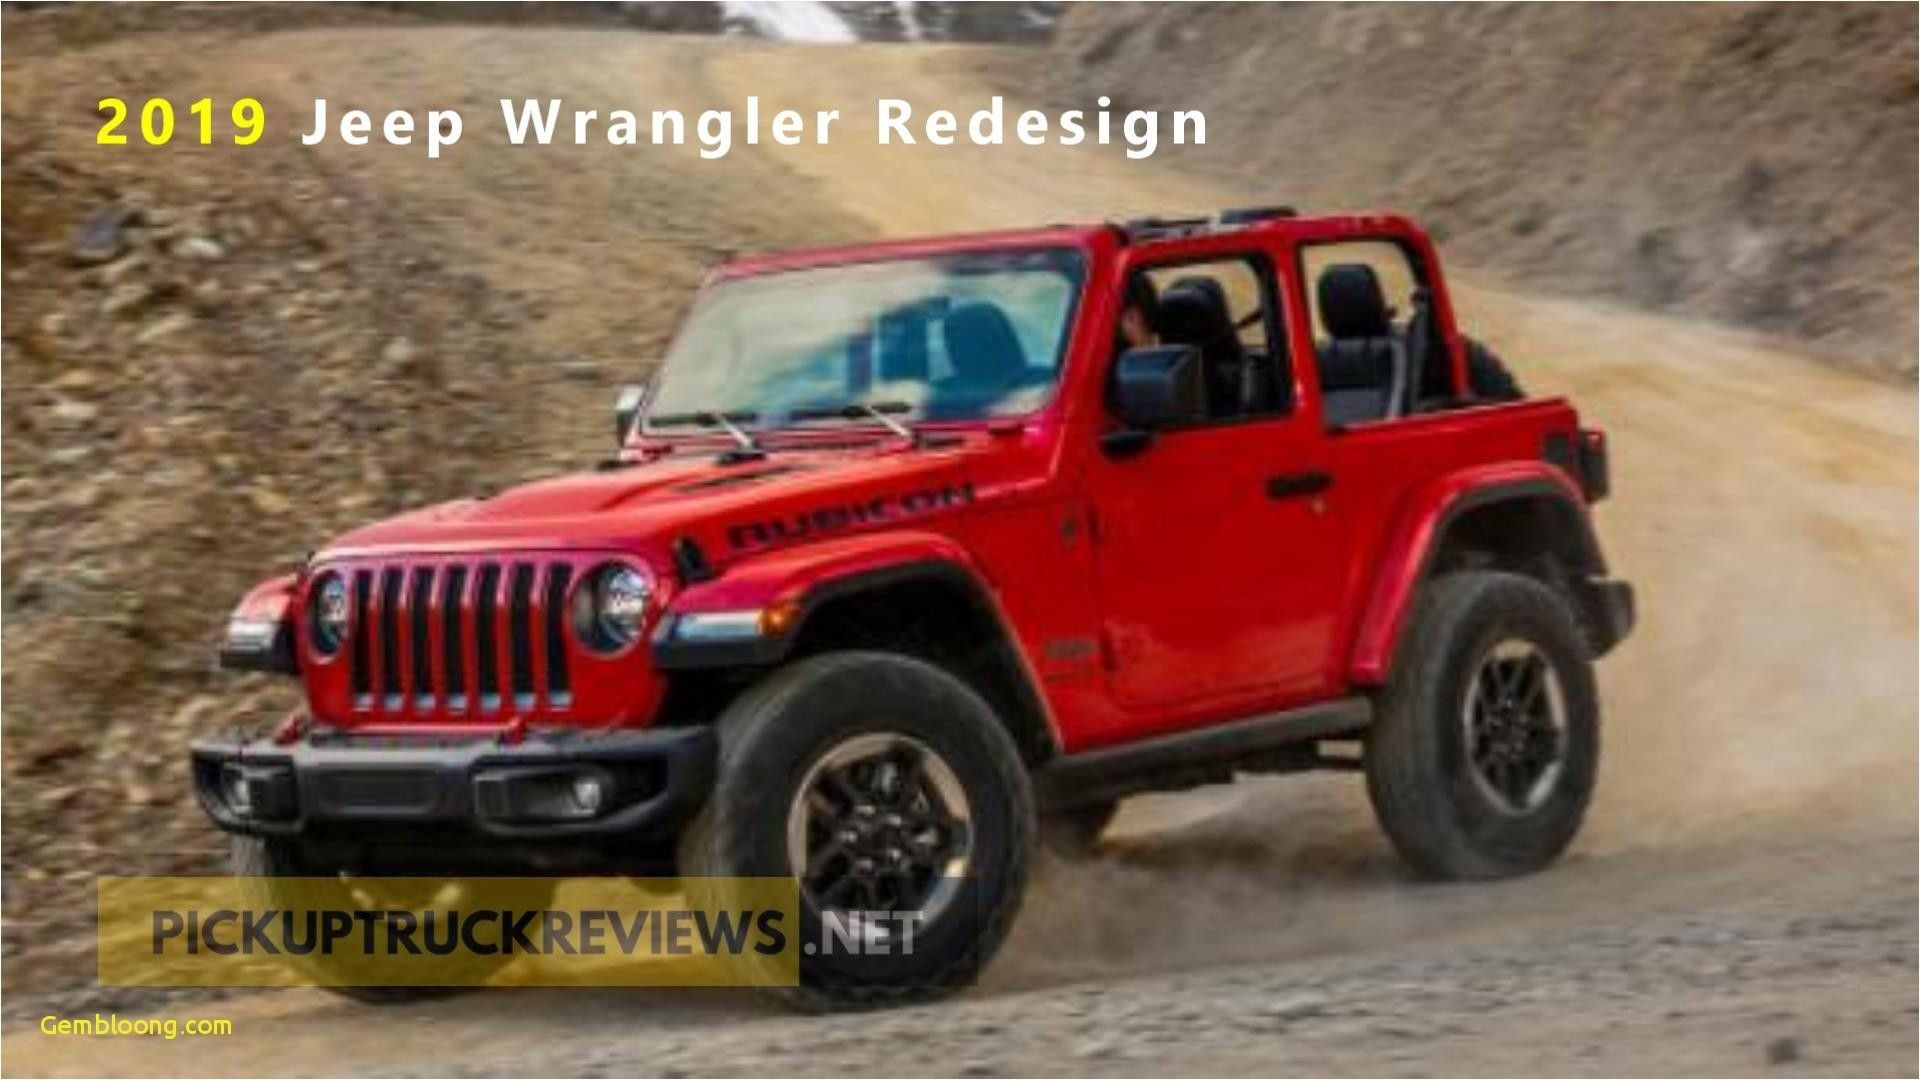 2020 Dodge Grandavan Mpg Jeep wrangler unlimited, Jeep